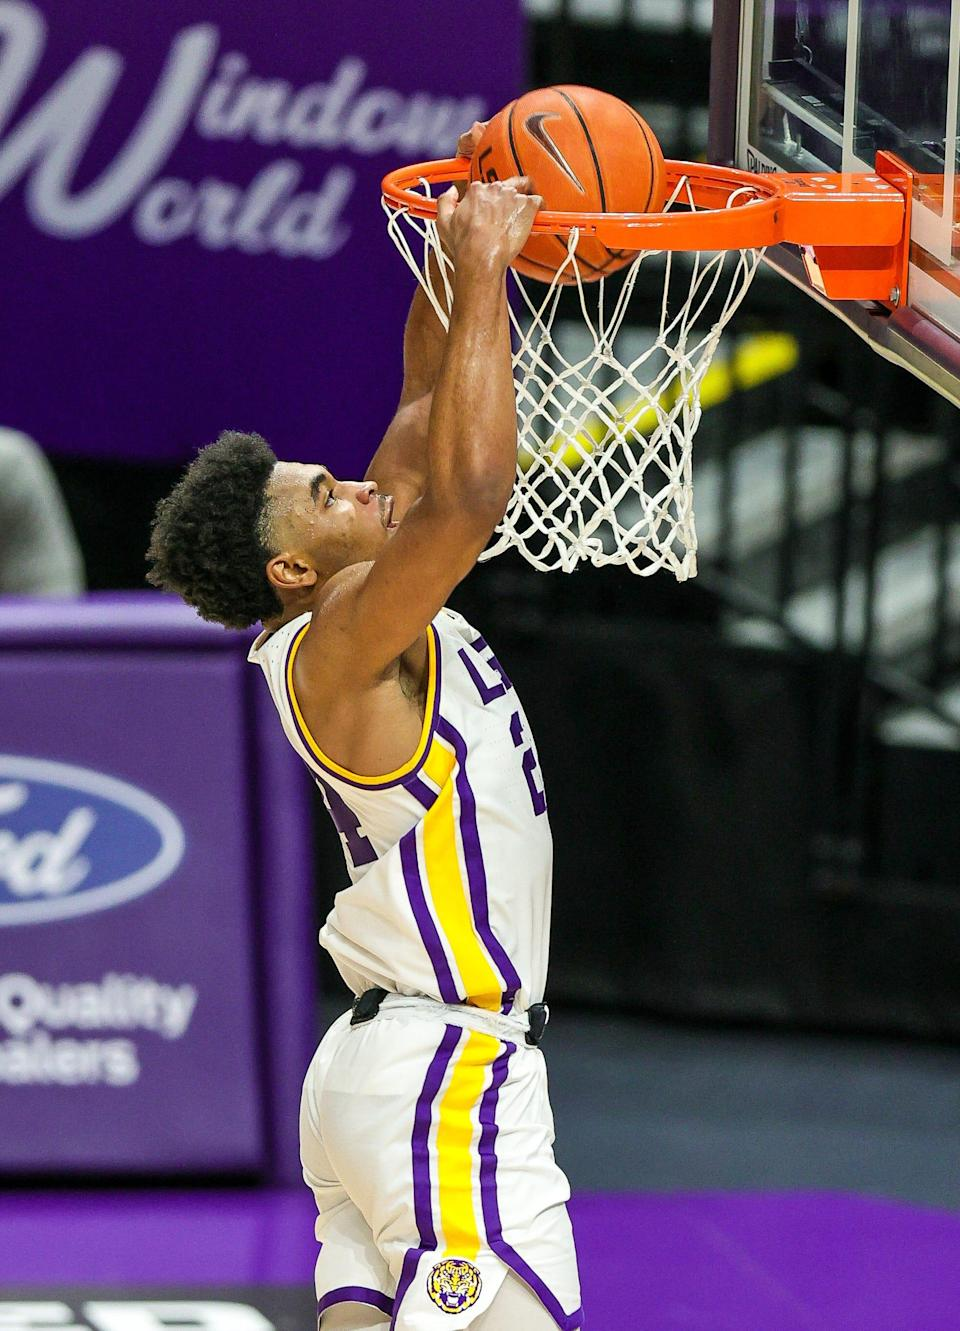 LSU Tigers guard Cameron Thomas (24) dunks the ball against the Texas A&M Aggies on a steal during the second half at Pete Maravich Assembly Center.